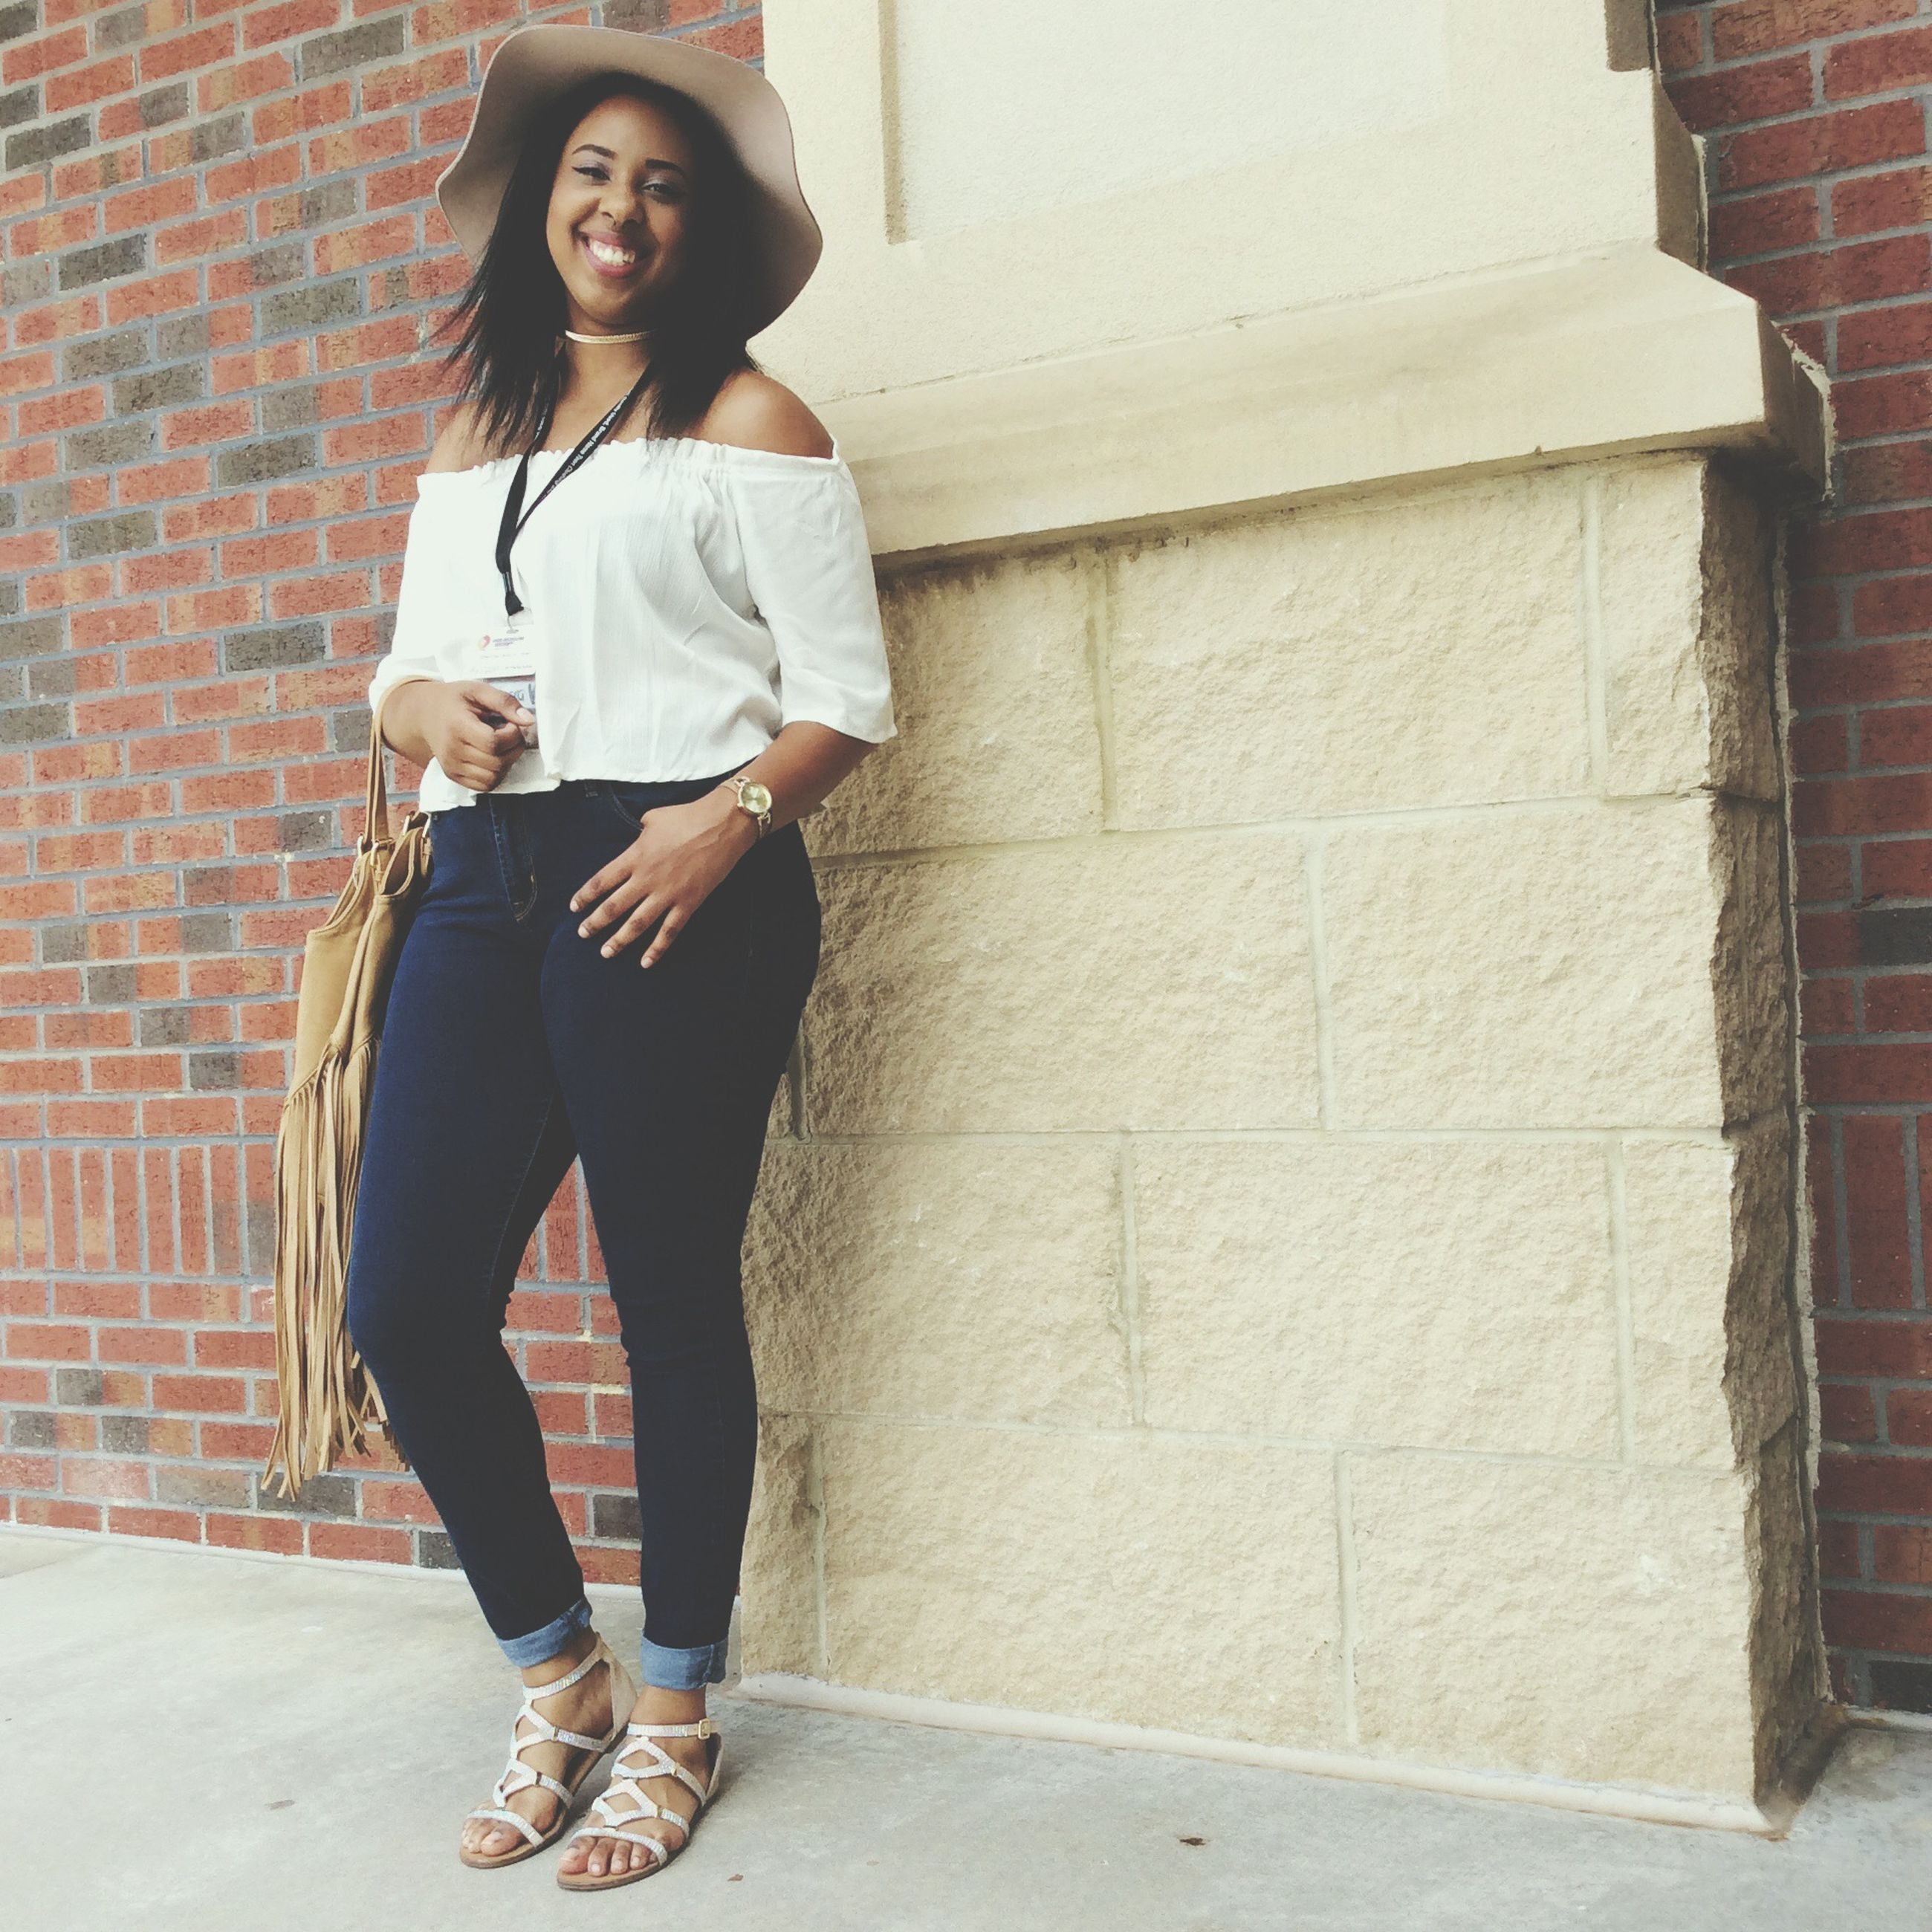 full length, standing, casual clothing, architecture, built structure, young adult, young women, brick wall, wall - building feature, person, leisure activity, lifestyles, portrait, building exterior, front view, looking at camera, t-shirt, long hair, day, confidence, outdoors